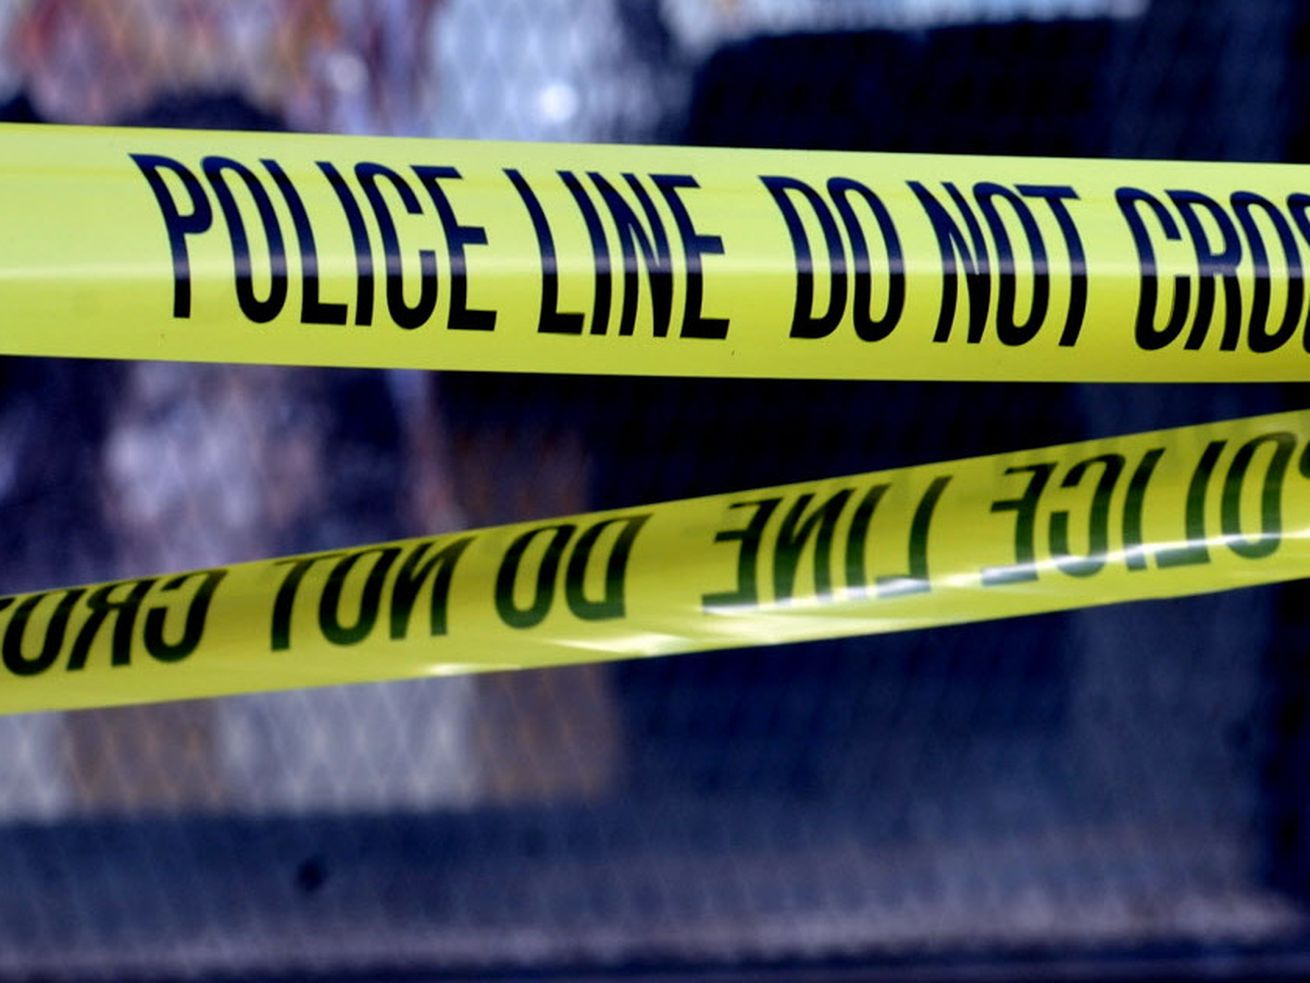 A teenage boy was shot April 27, 2021, in Gage Park.